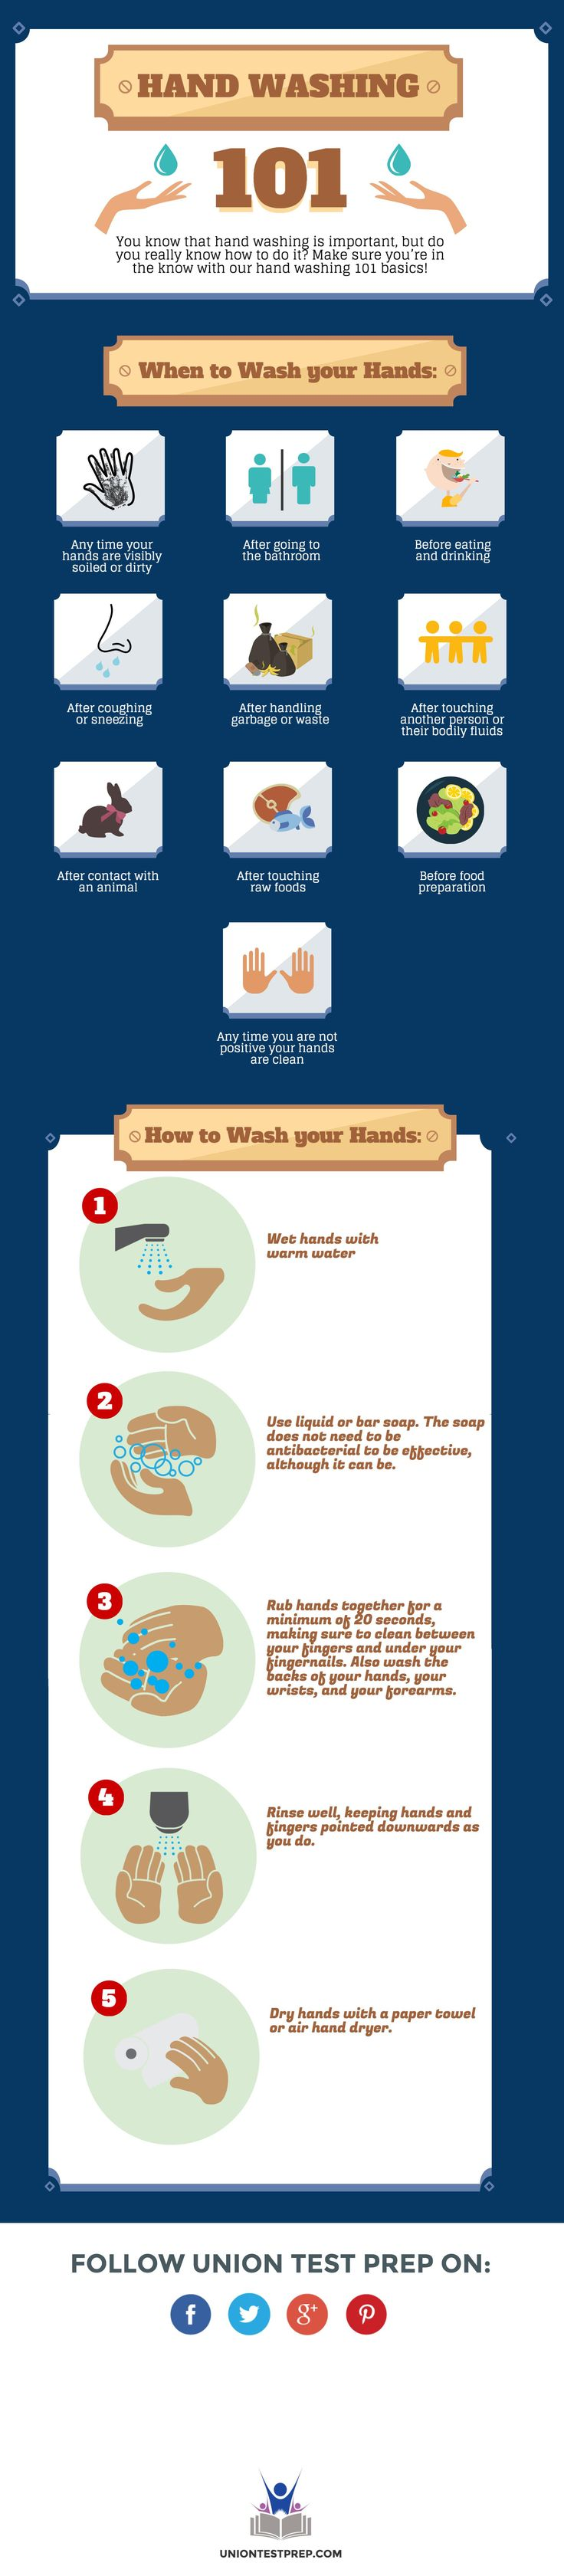 Make sure you're washing your hands the correct way with this infographic! Great info for those in the food industry!